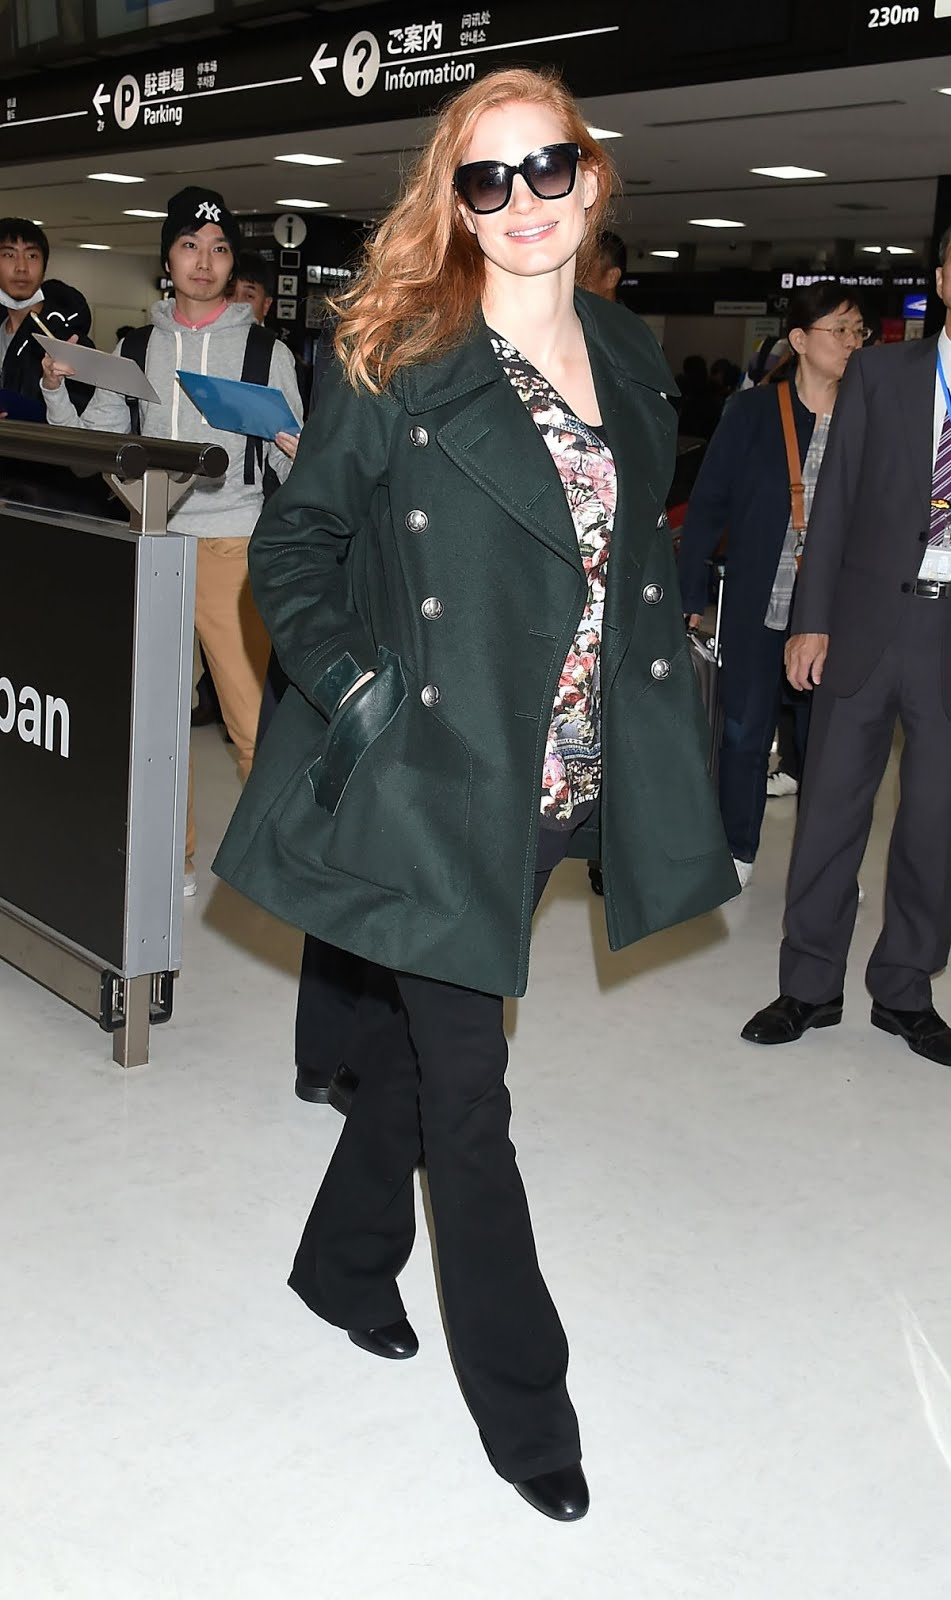 Photos of Jessica Chastain at Narita International Airport